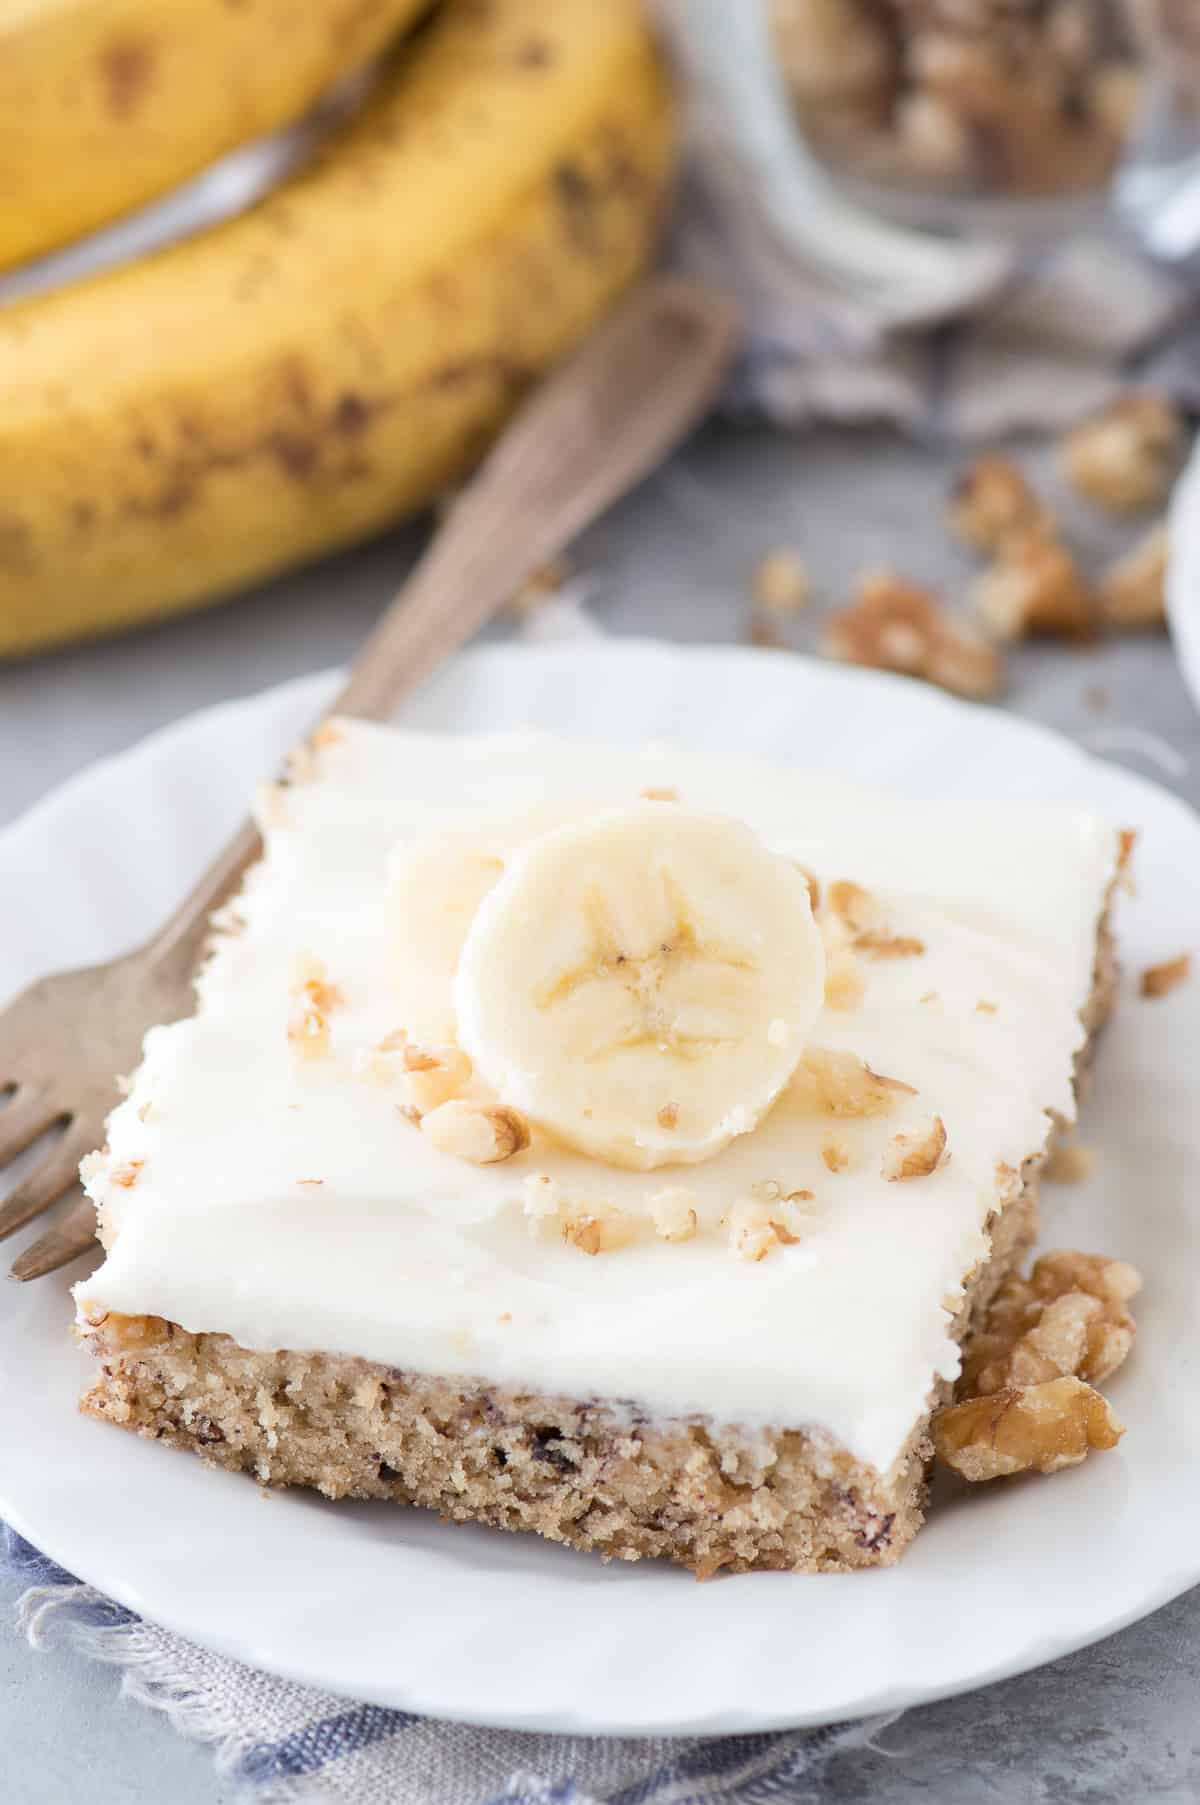 banana bar with cream cheese frosting and banana slice on white plate